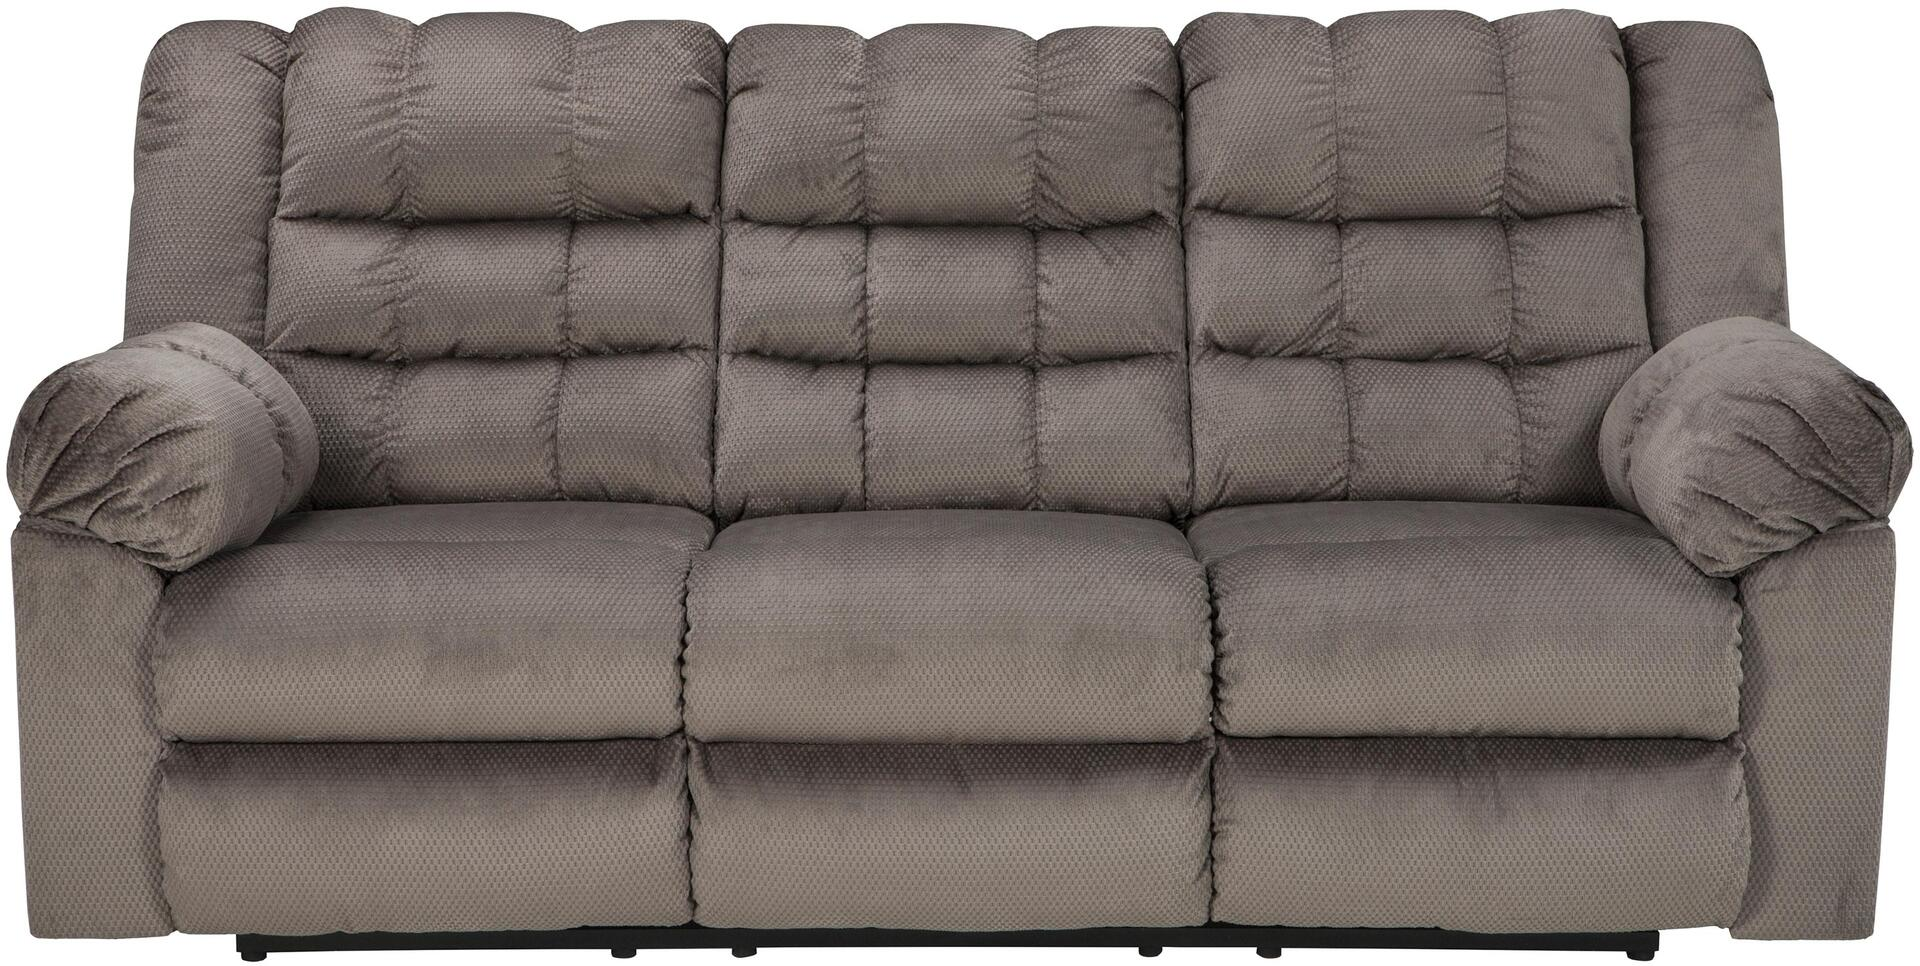 Sofas Black Friday Valencia Couch Front View Amazing Deluxe Home Design